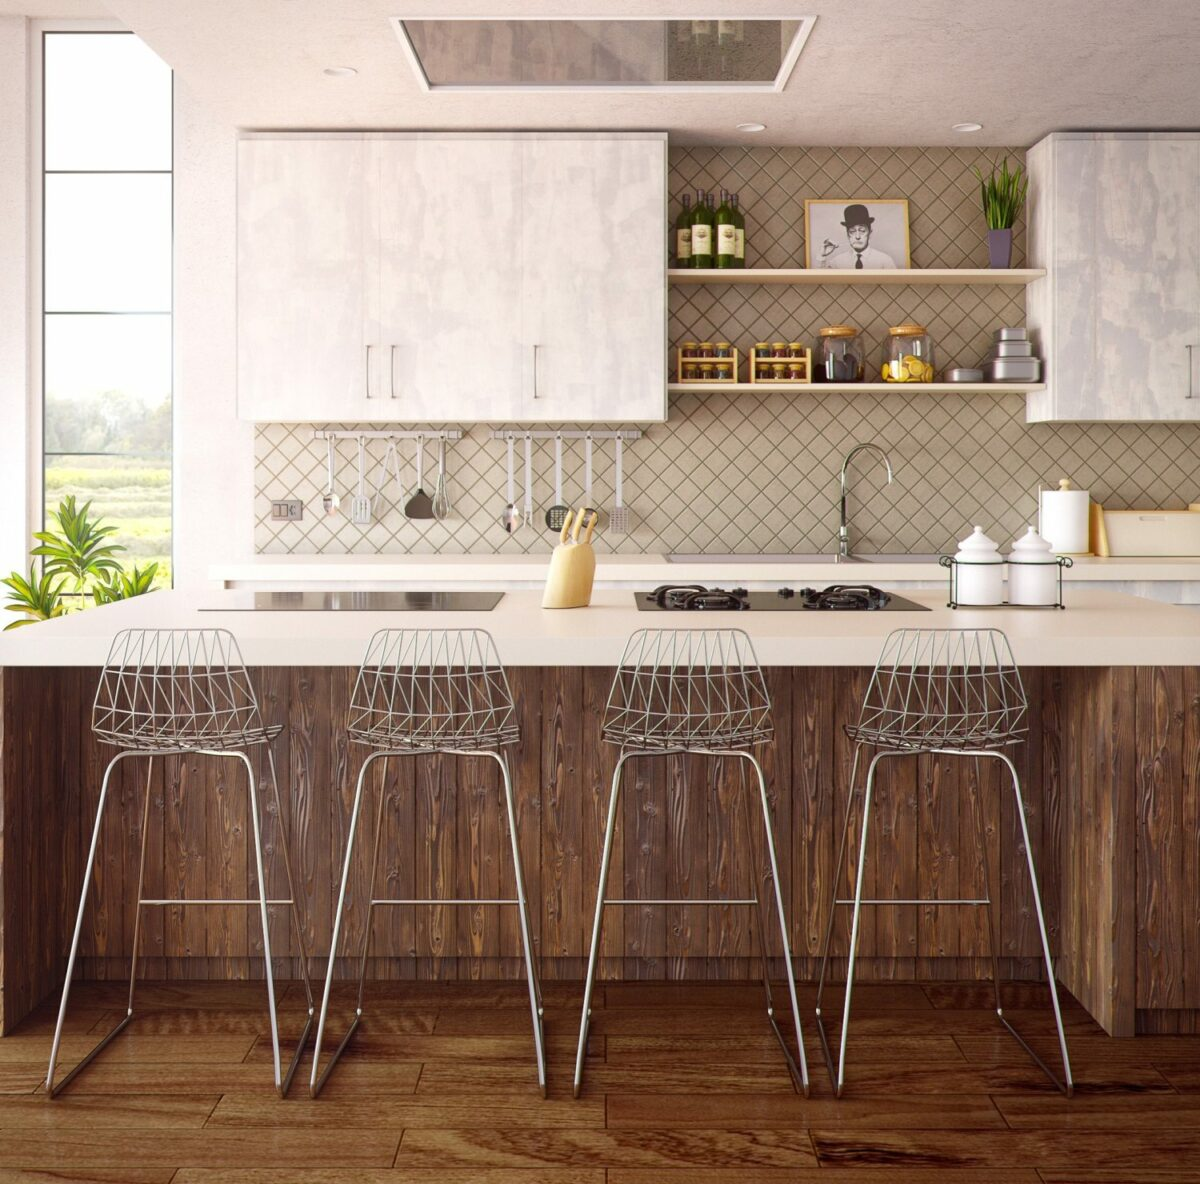 7 tips you must consider for an outstanding kitchen